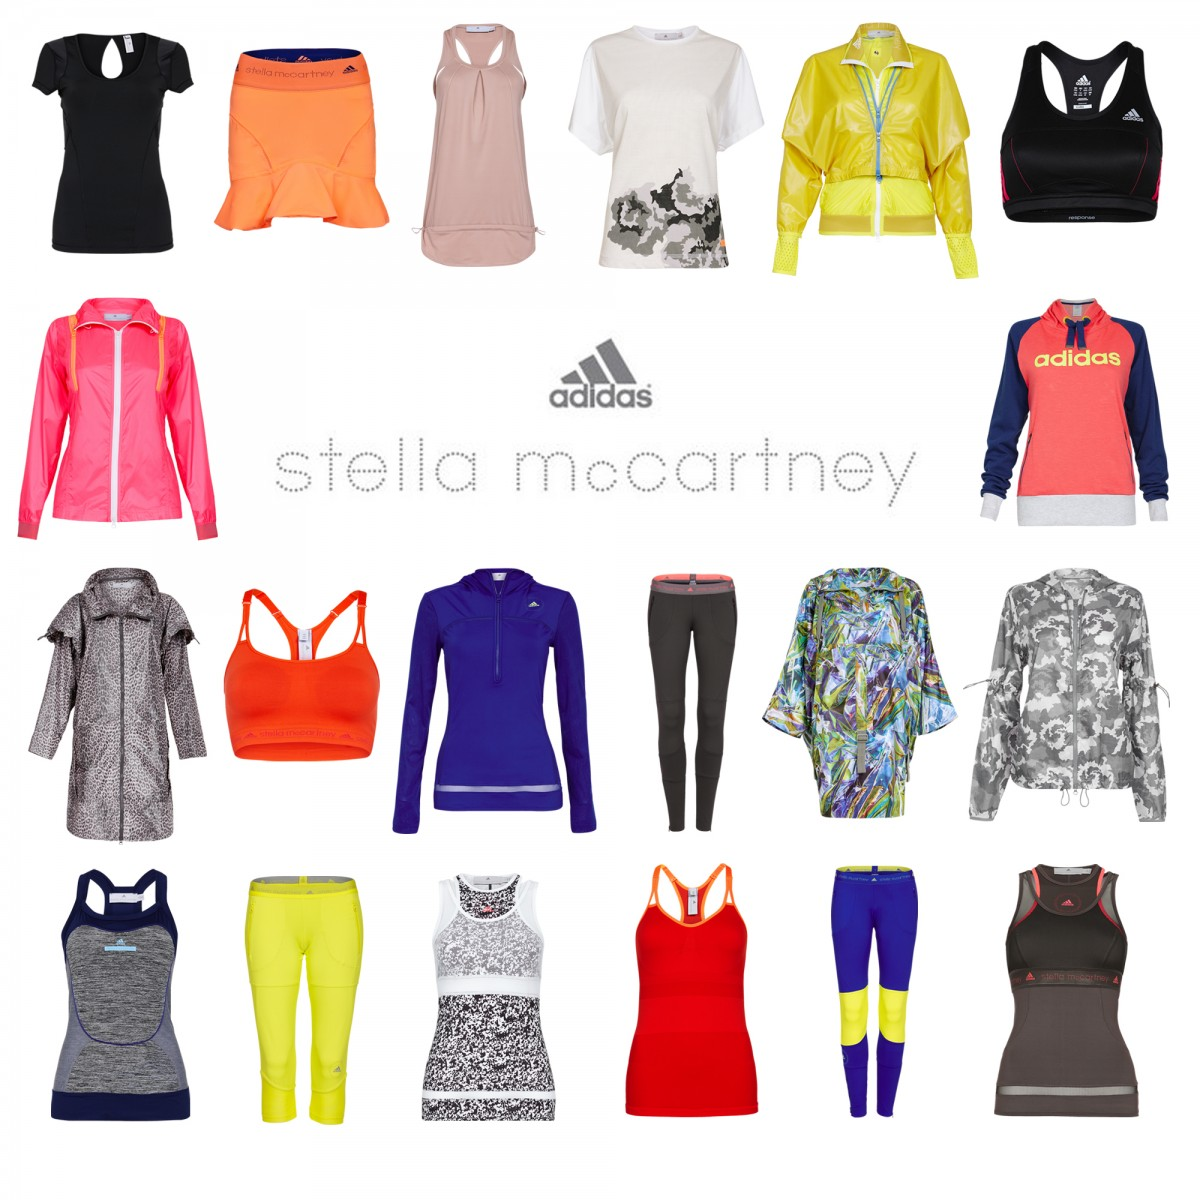 IMAGES THAT SELL SHOOT STELLA McCARTNEY ADIDAS